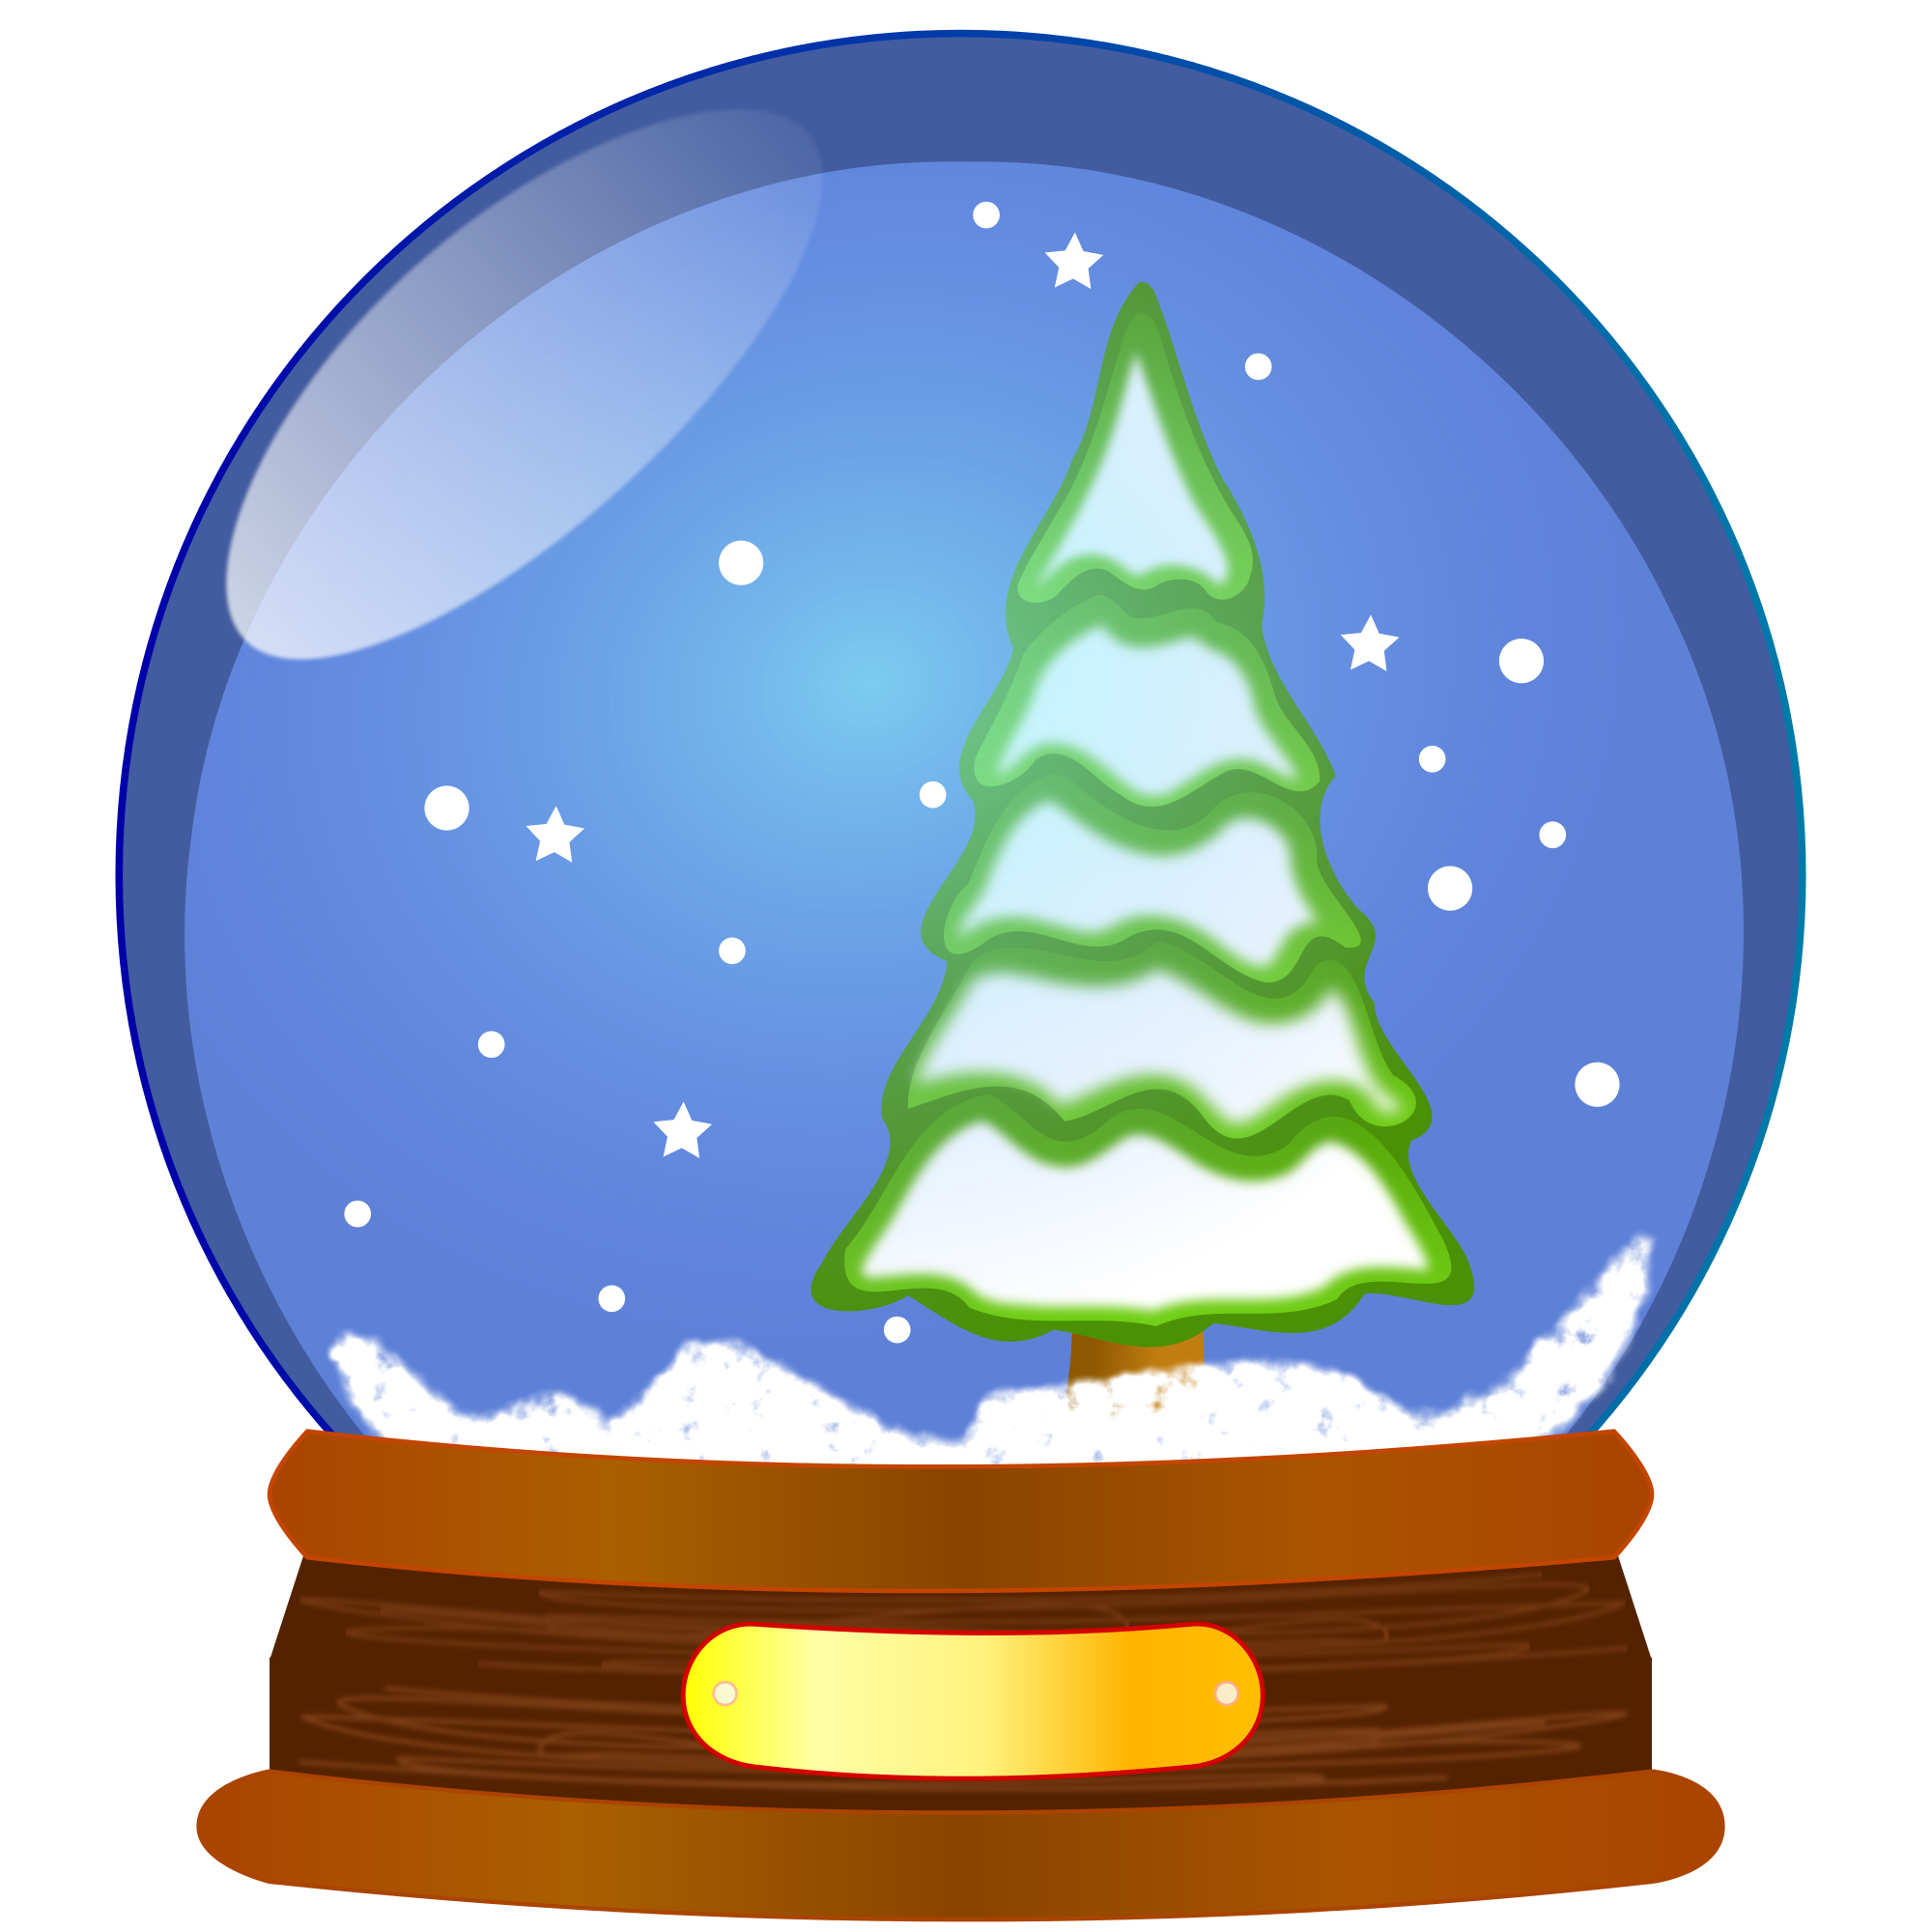 Christmas snow globe clipart picture library library Snow-globe-clipart.svg | Dunlap Public Library District picture library library